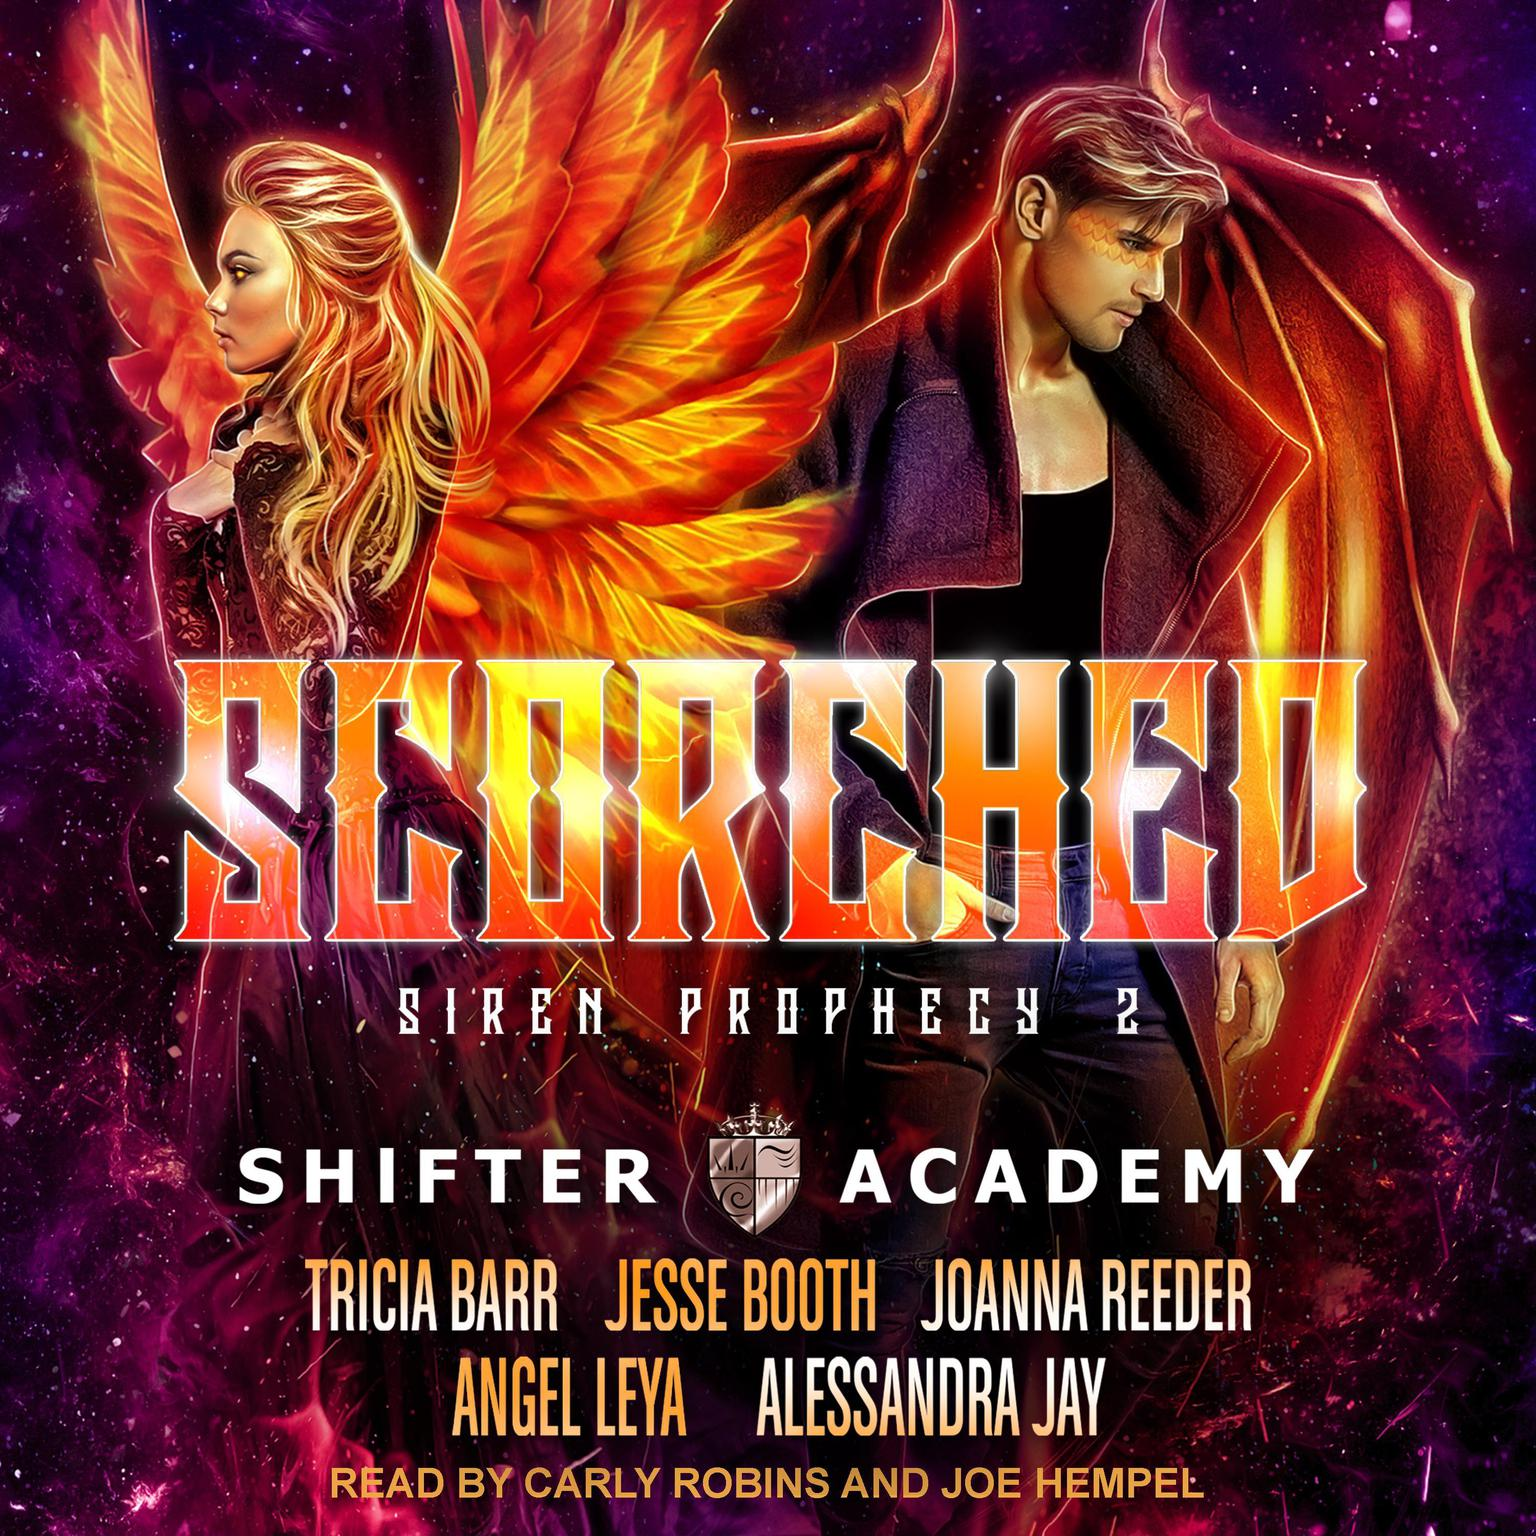 Printable Scorched: Siren Prophecy 2 Audiobook Cover Art